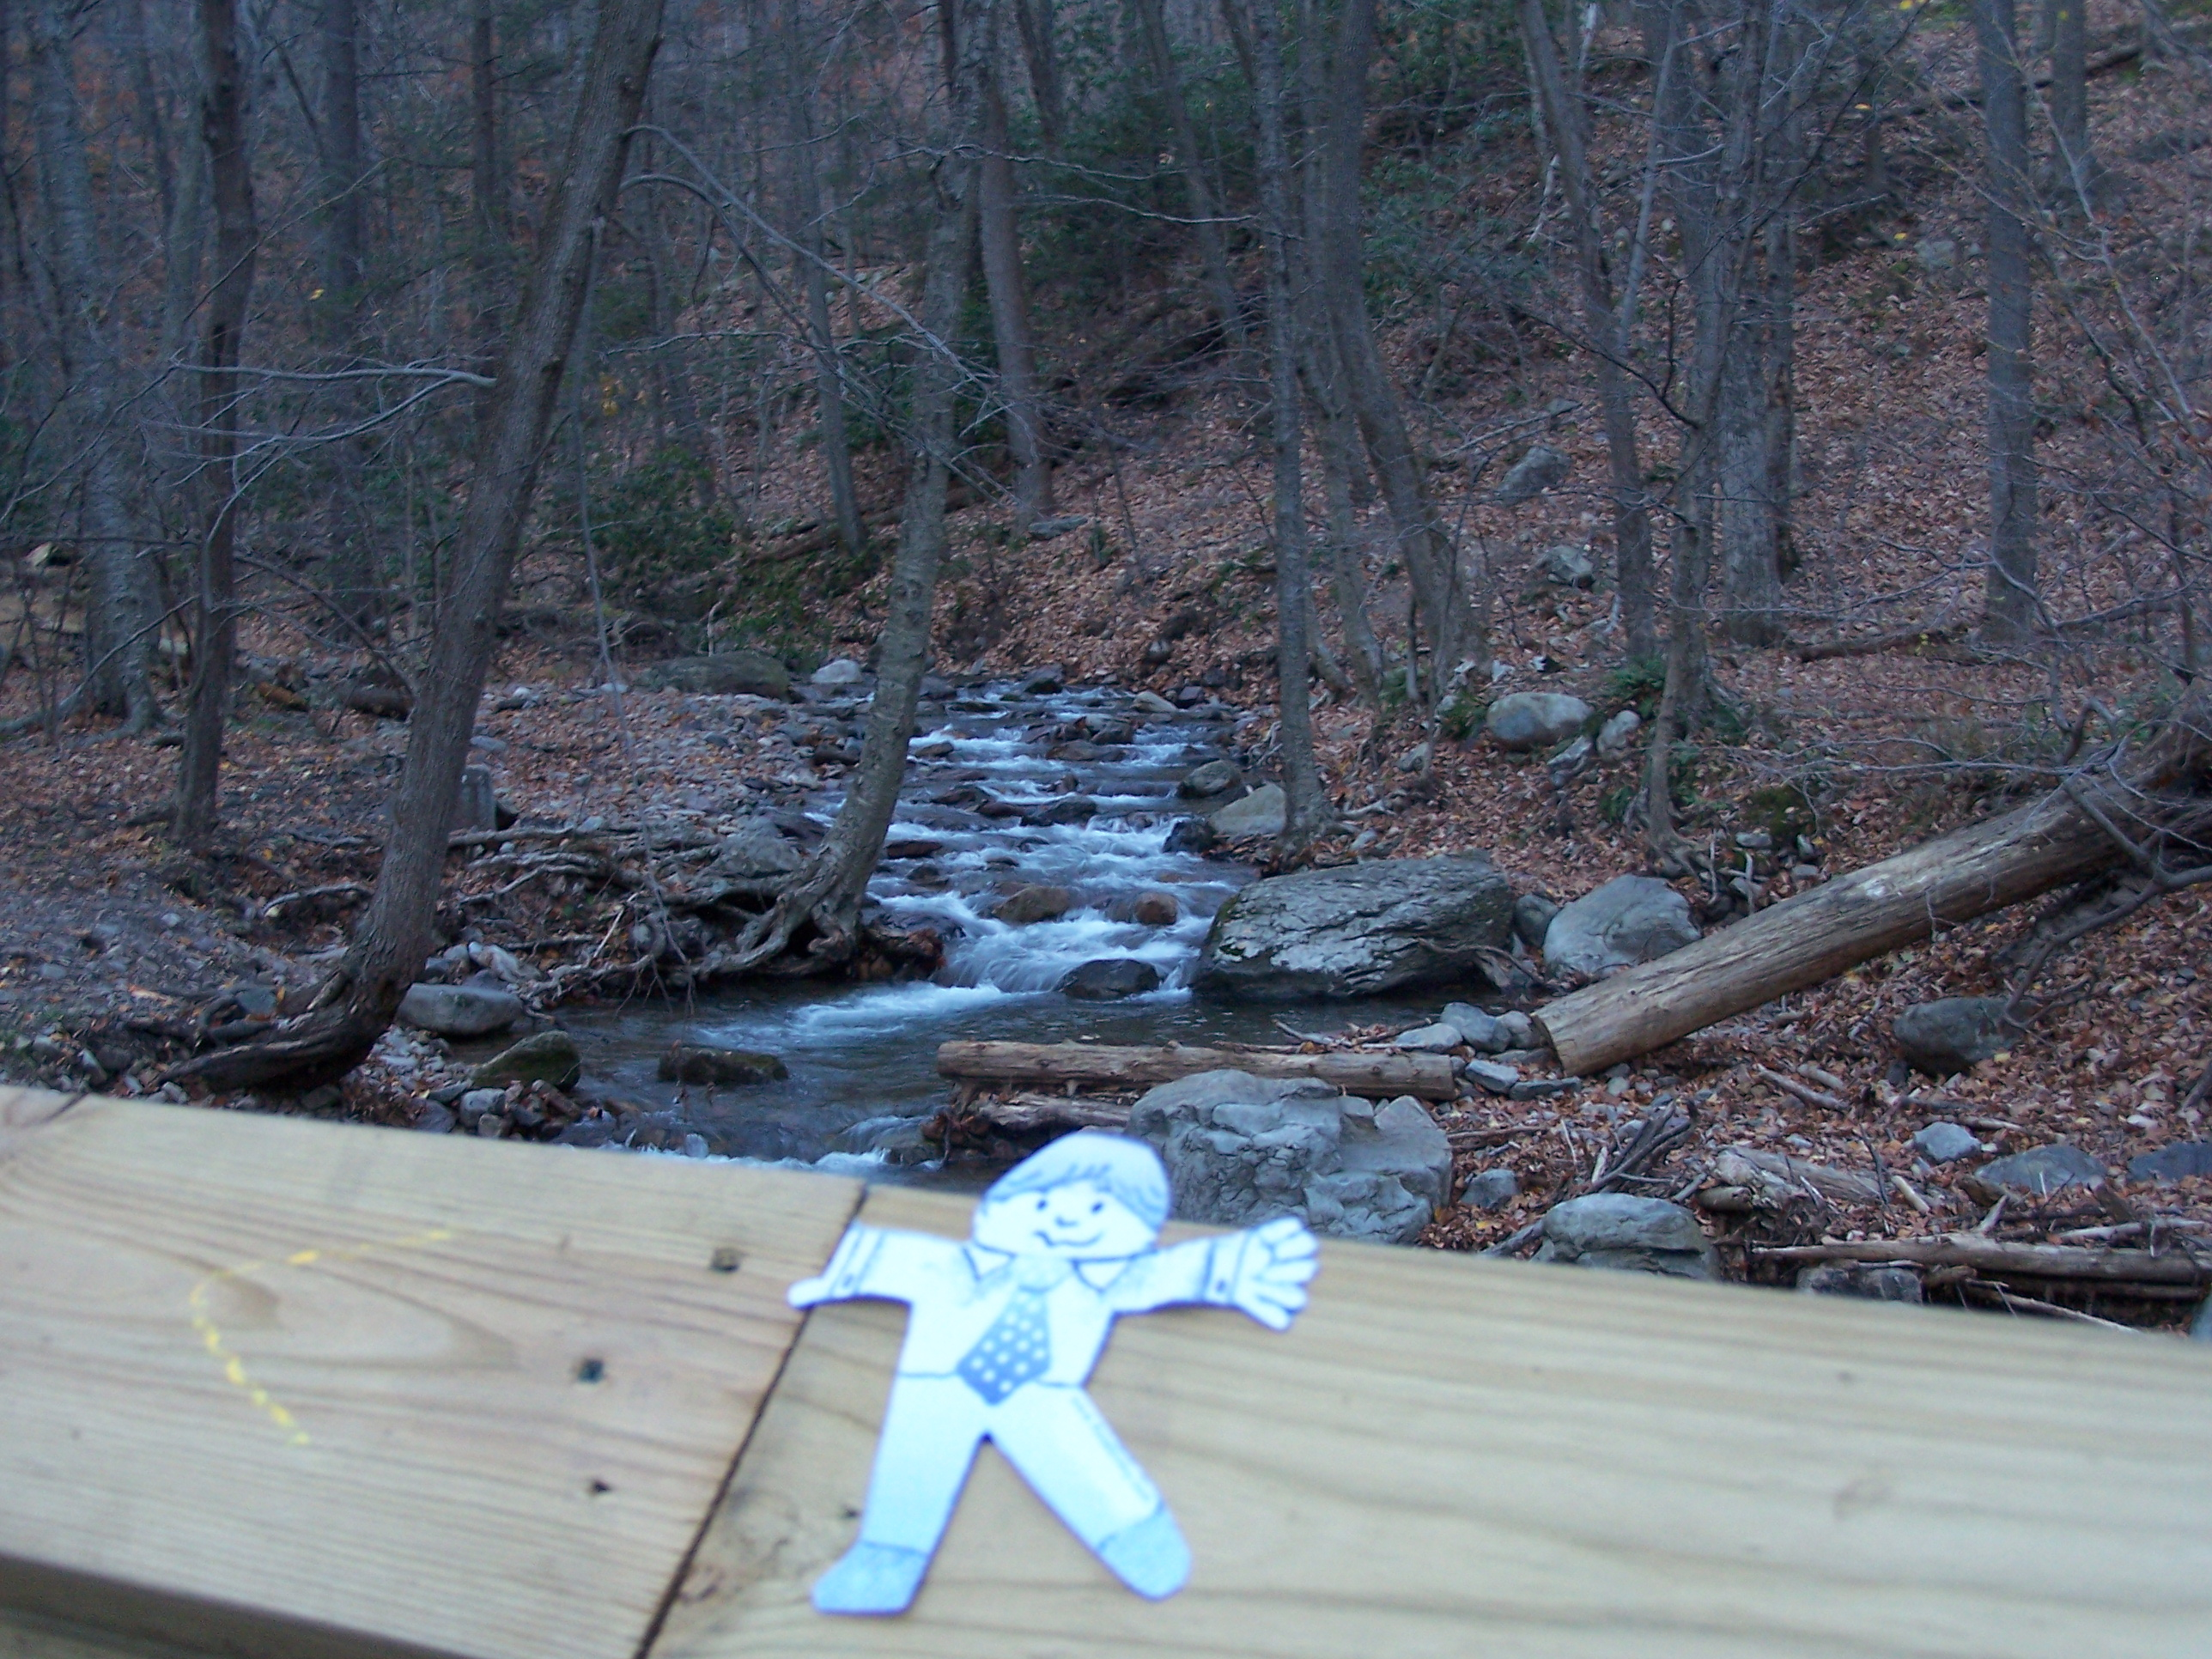 Flat Stanley Rohland on bridge over Dunnfield Creek